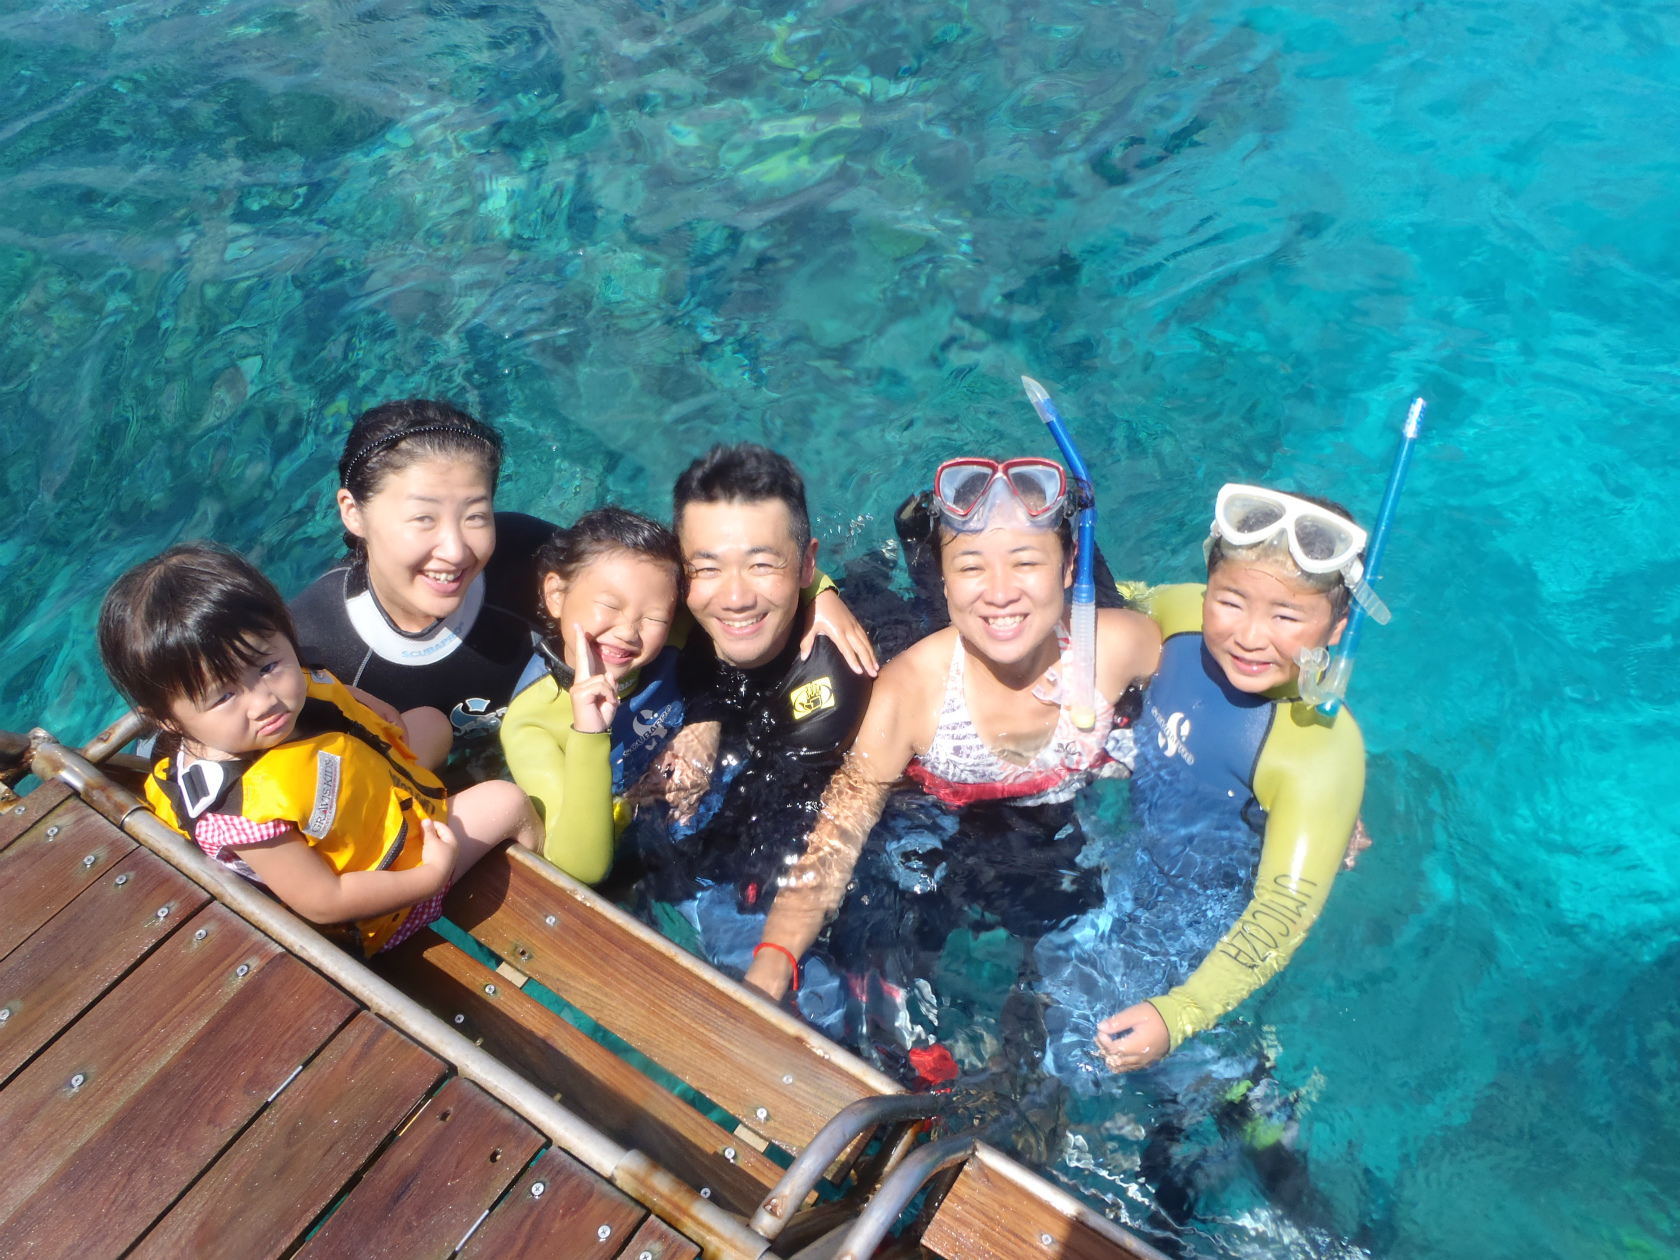 Go Snorkeling with Emerald Ocean! - in Ishigaki Island